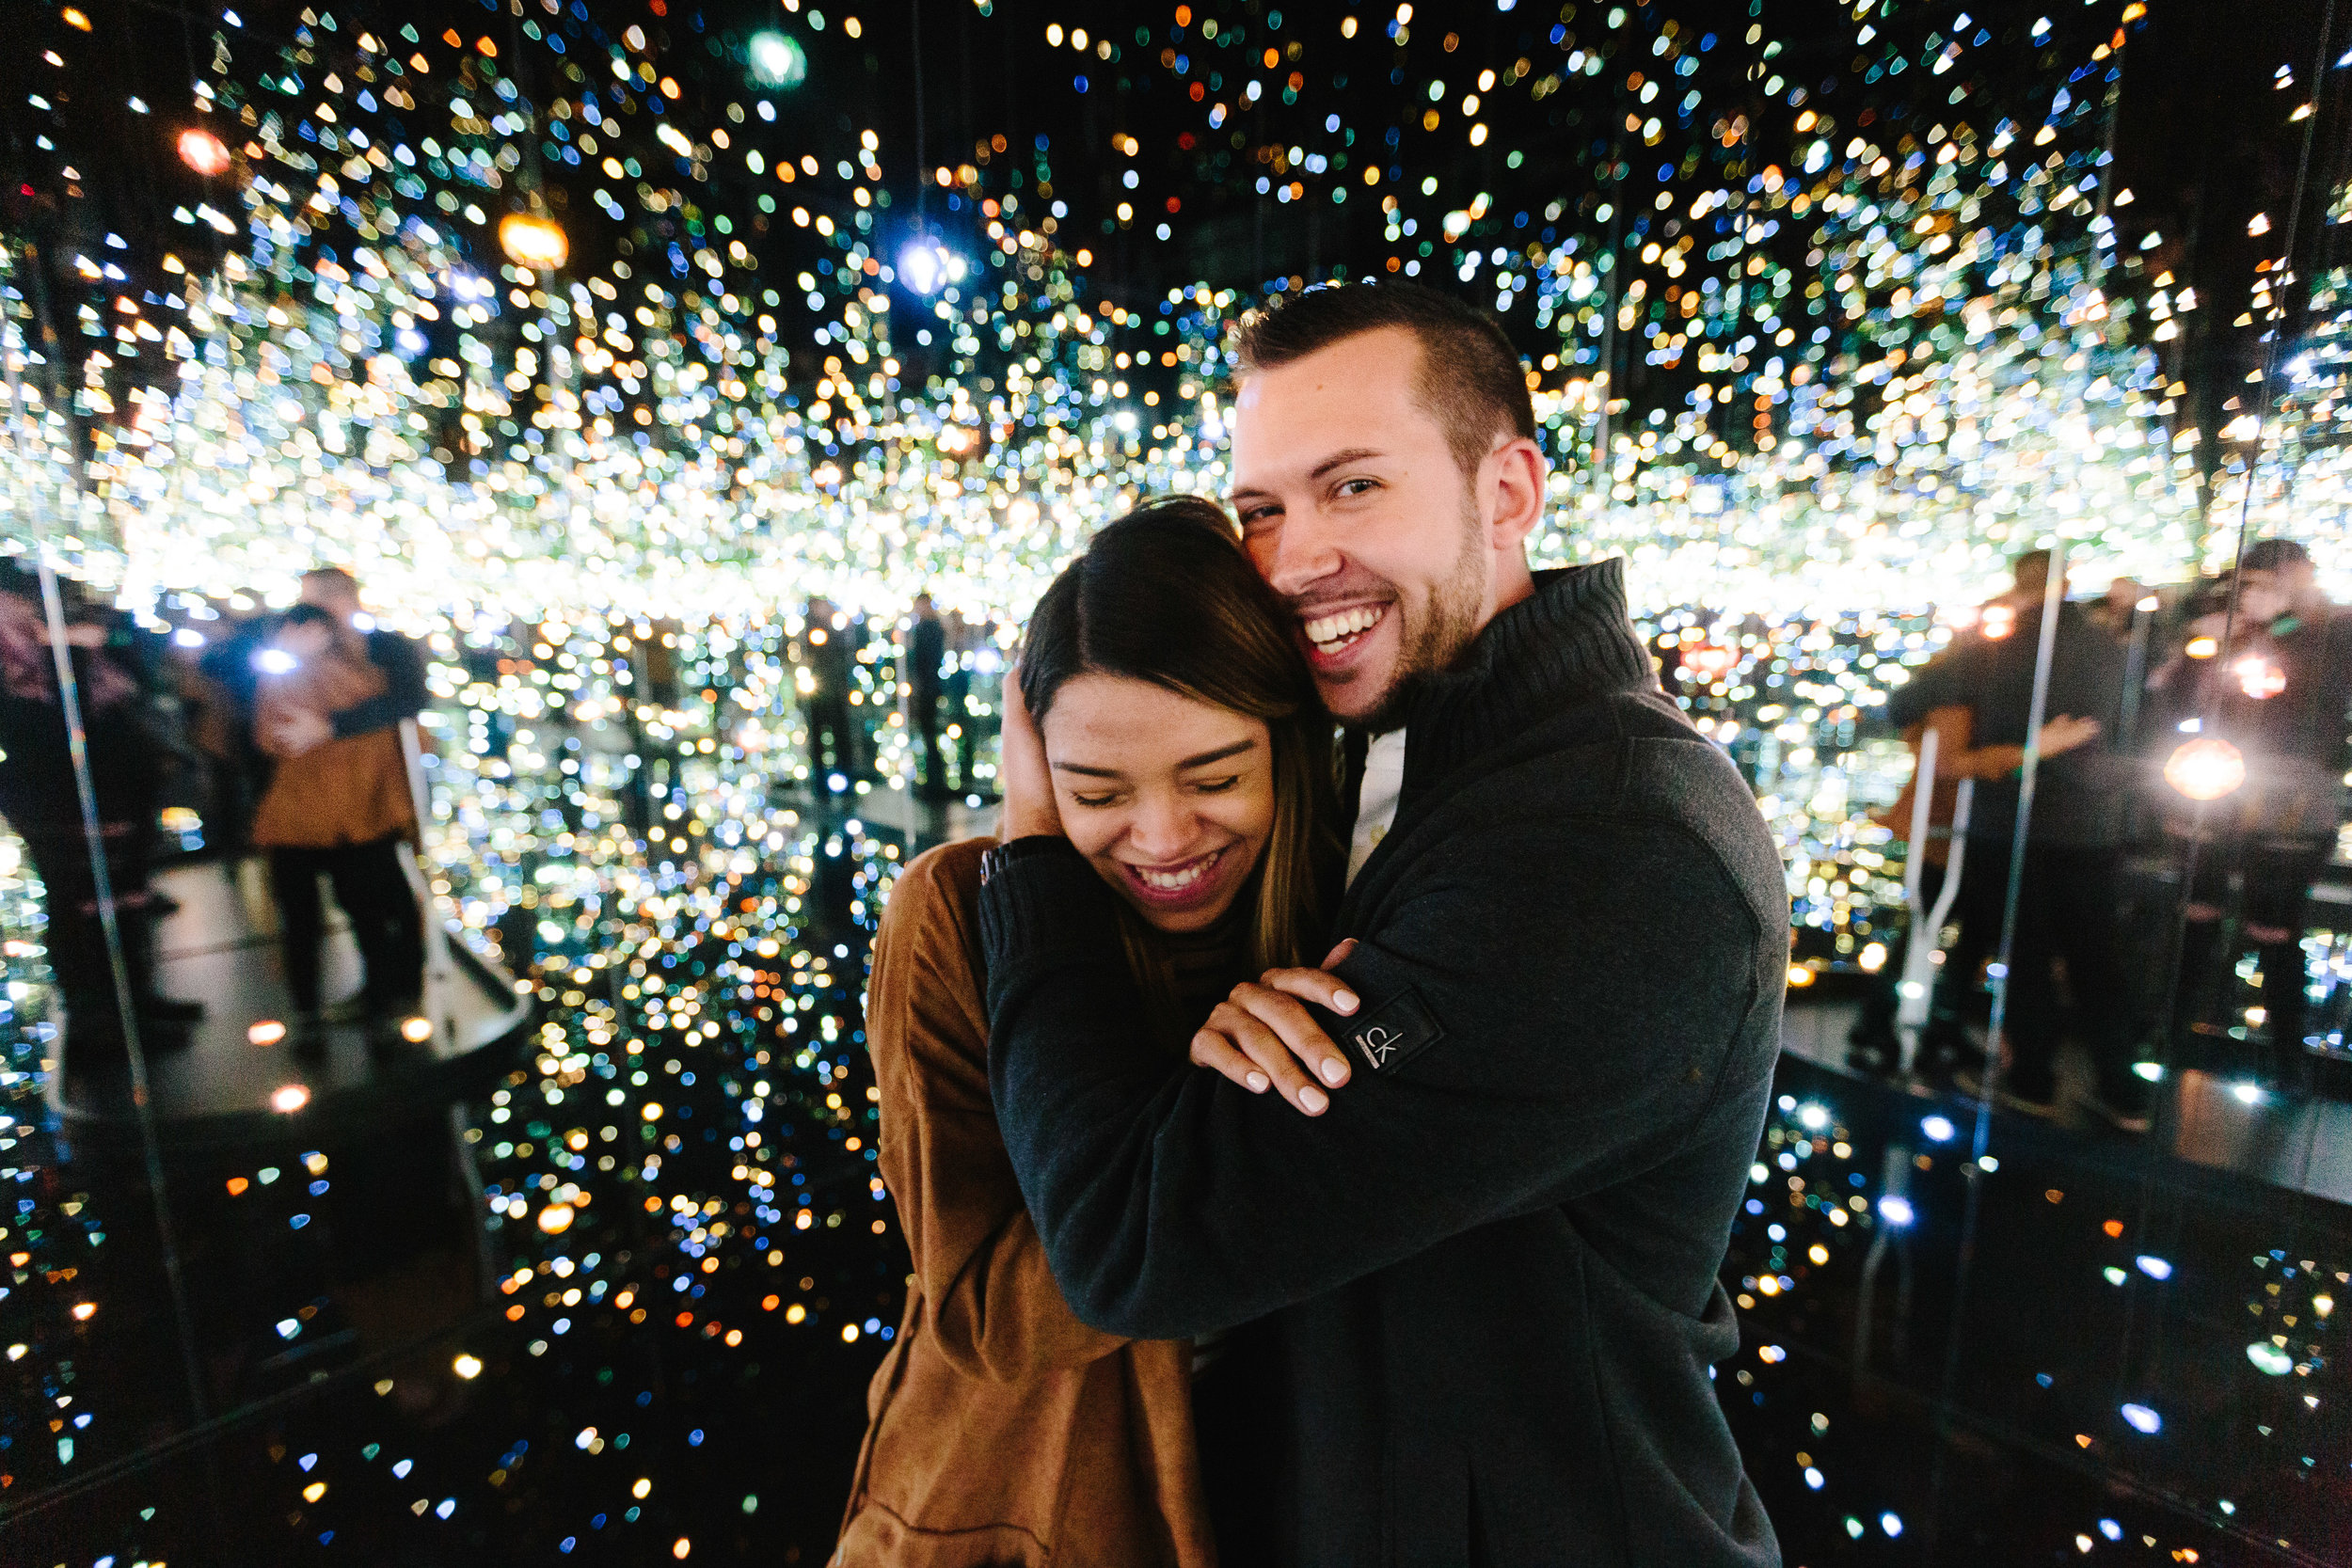 high_museum_infinity_mirrors_Yayoi_Kusama_proposal_amazing_atlanta_real_couple_engagement_ideas_epic_1020.jpg